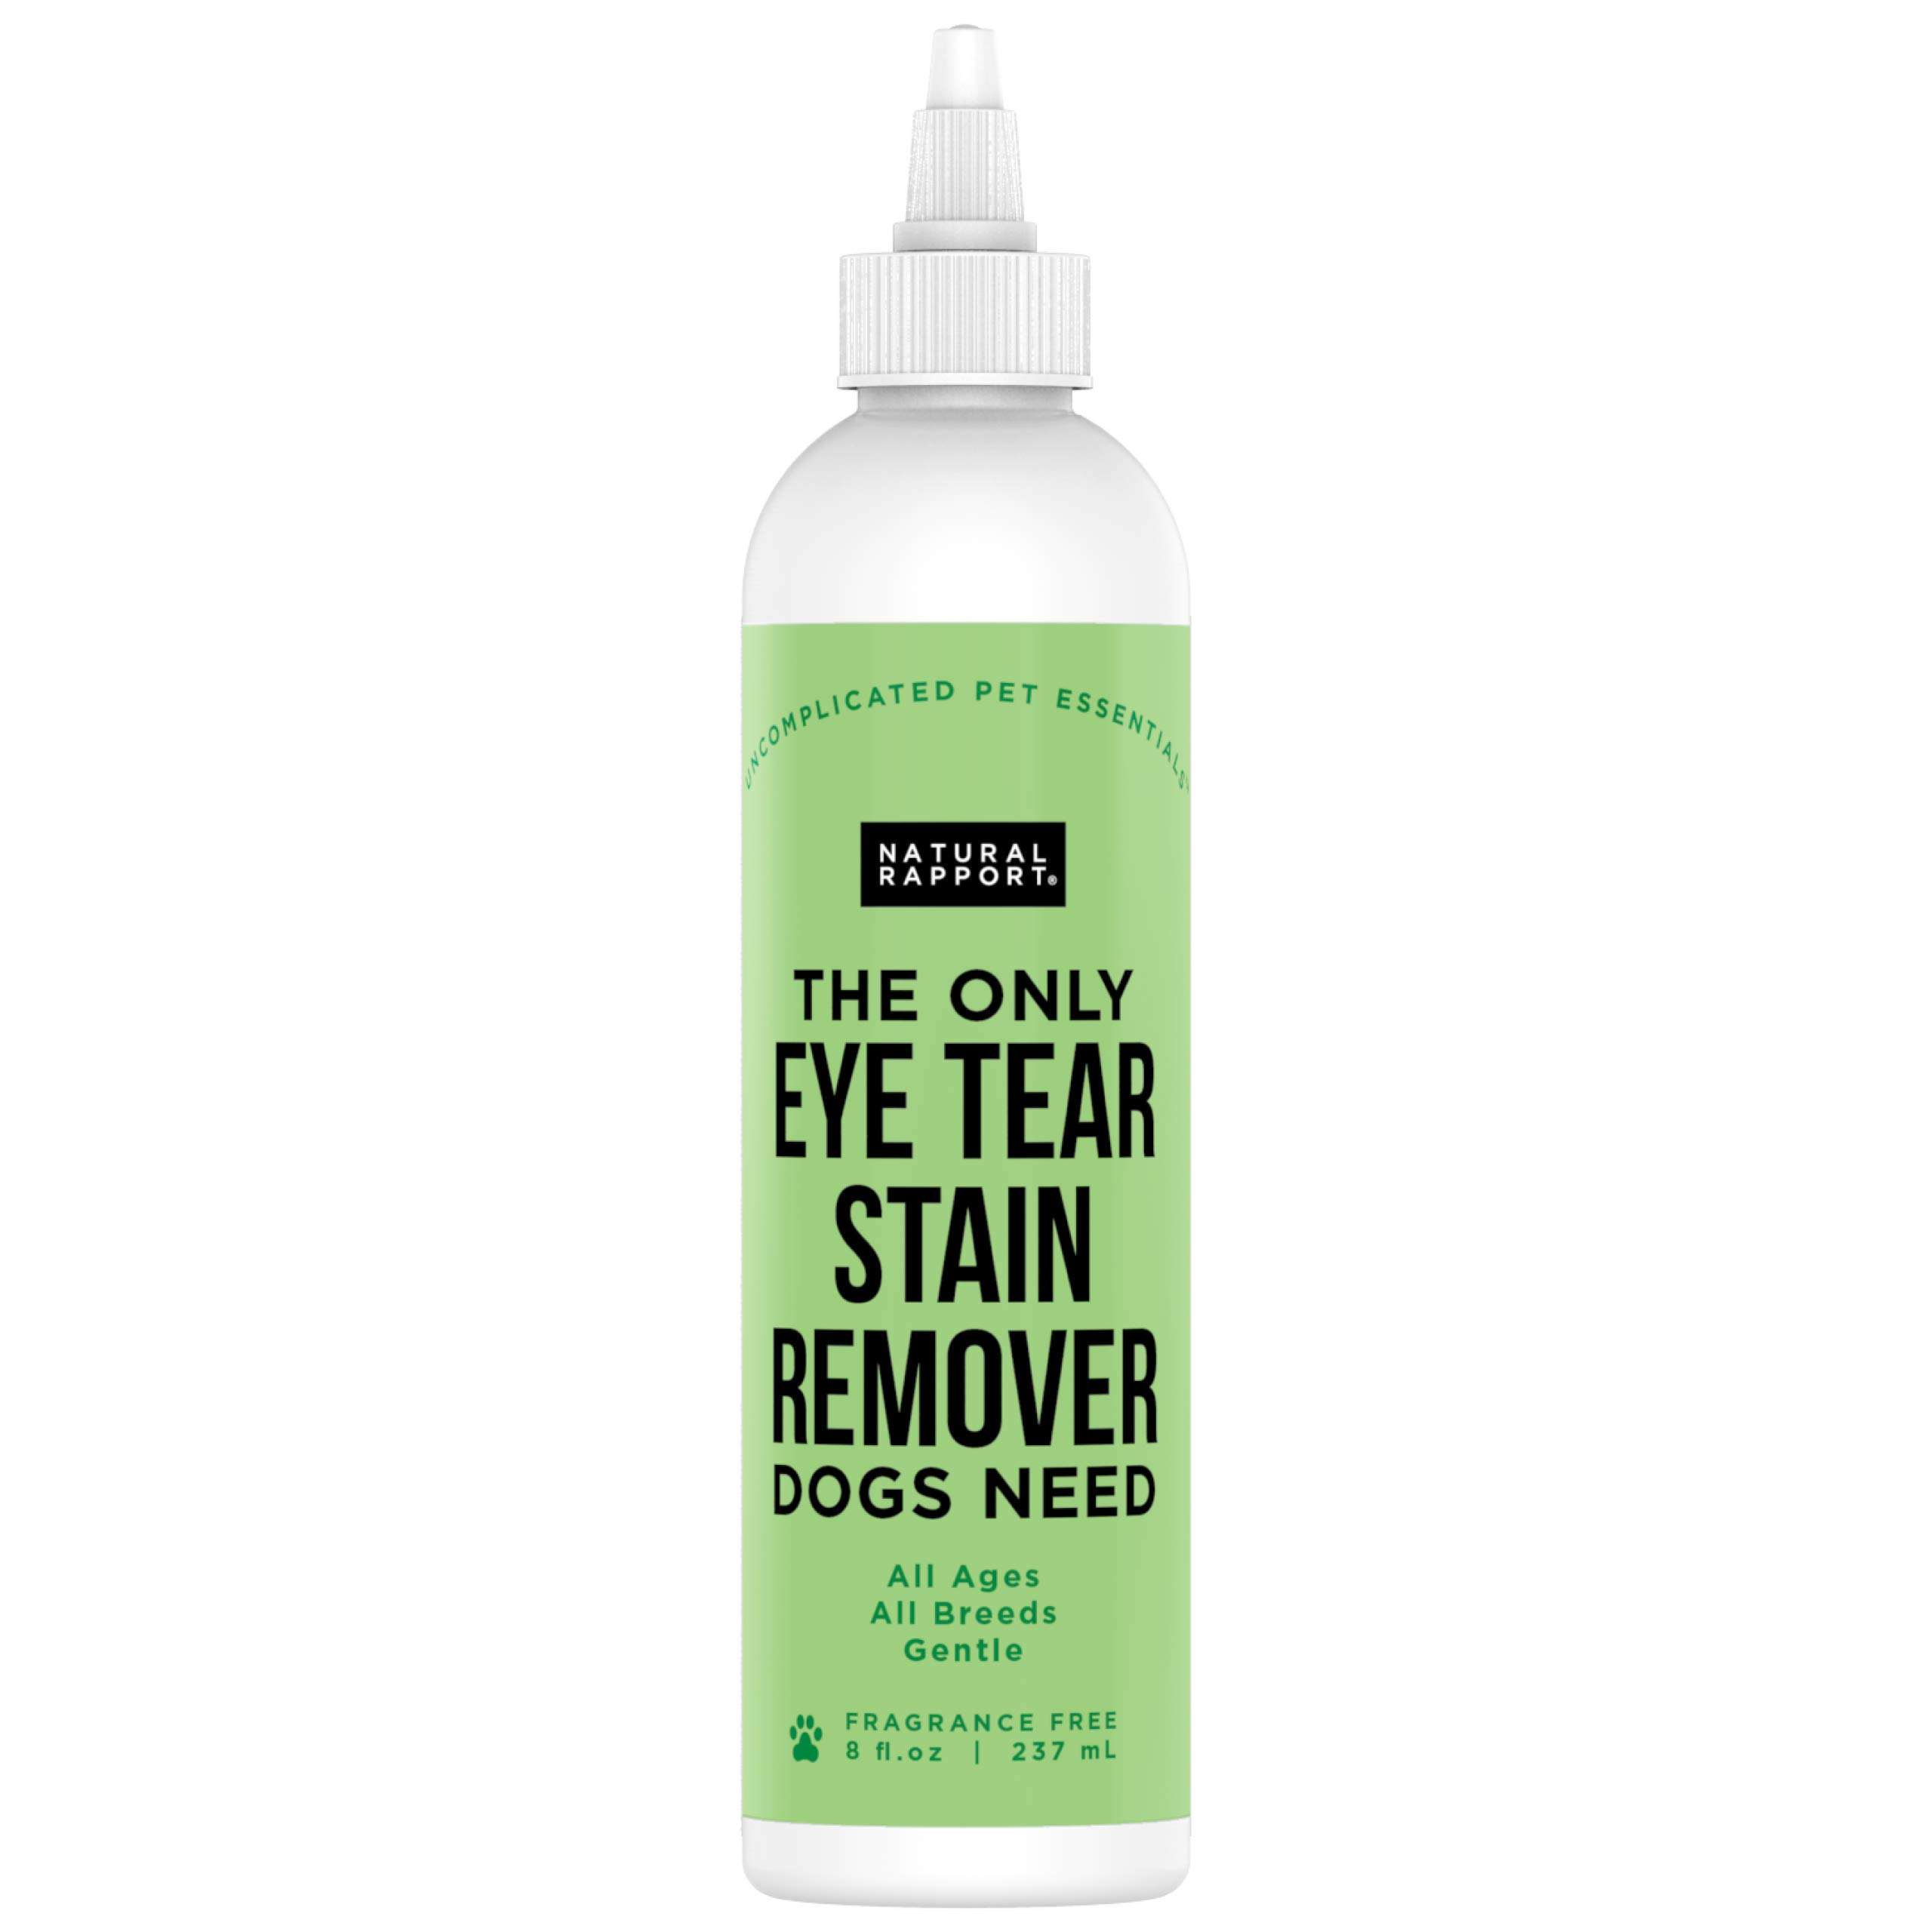 Natural Rapport Pet Eye Stain Remover - The Only Eye Tear Stain Remover Dogs Need, Dog and Cat Tears Stain Removing Treatment (Drops & Wipes)